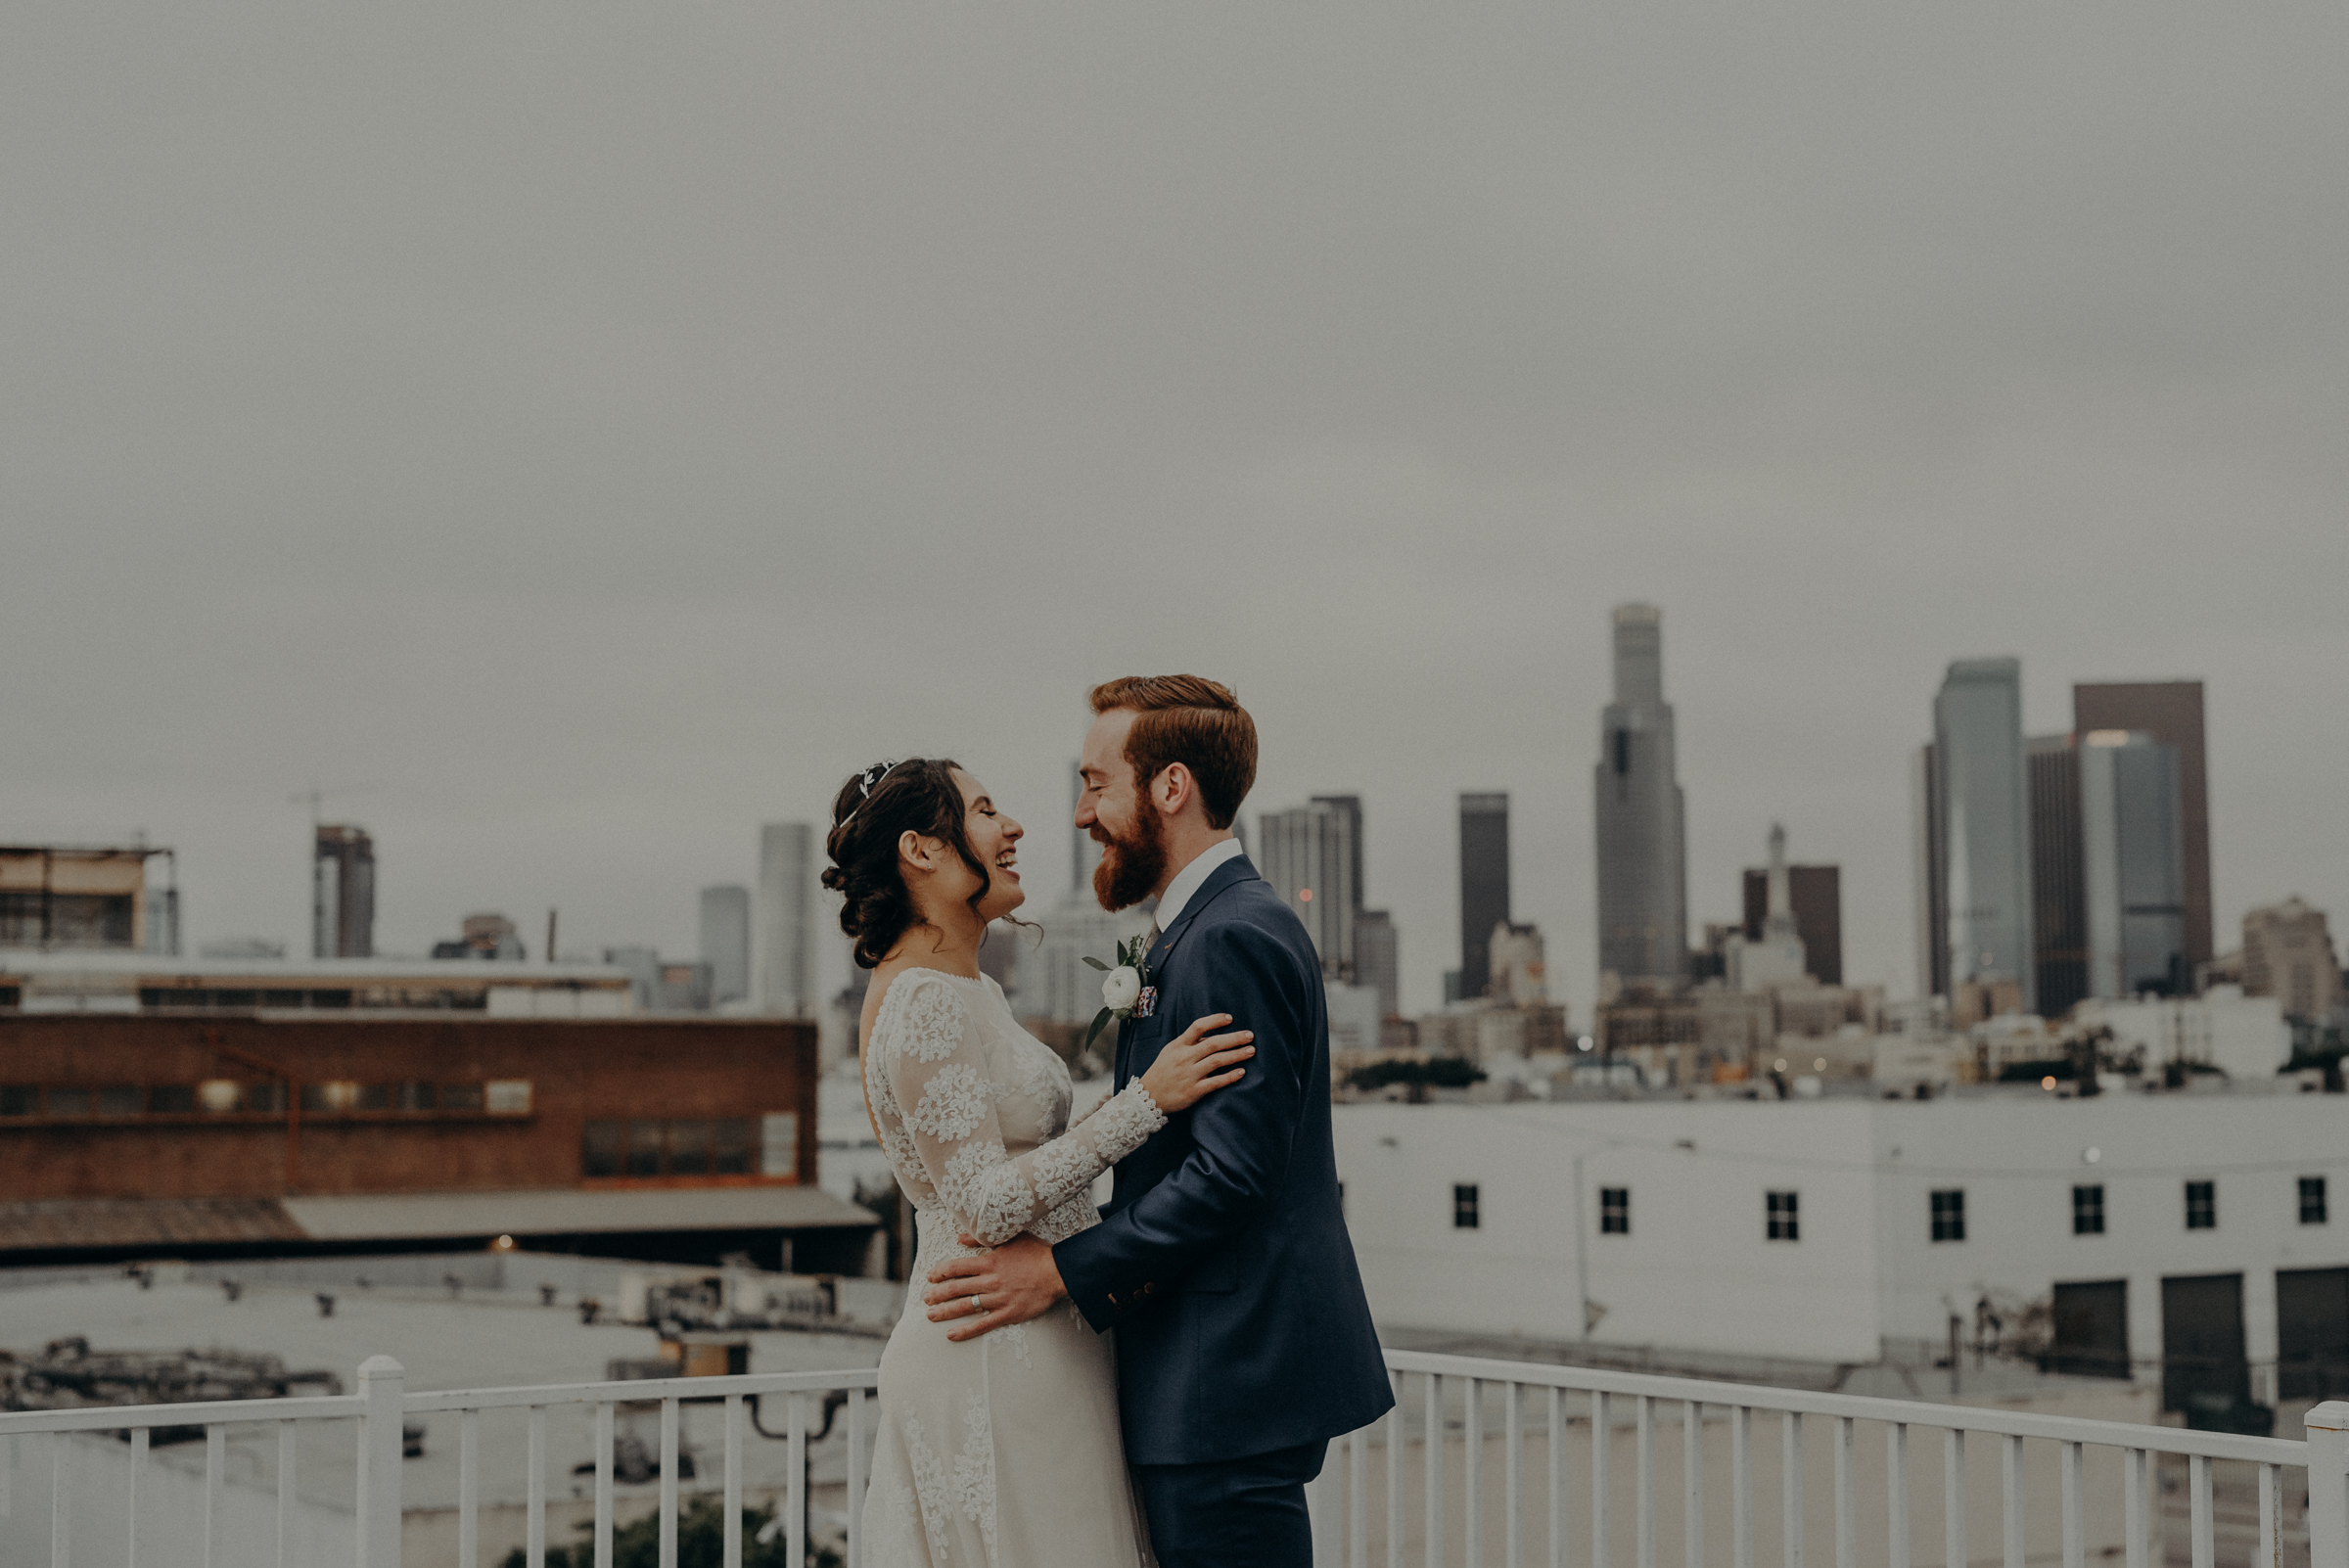 Isaiah + Taylor Photography - The Unique Space Wedding, Los Angeles Wedding Photography 133.jpg